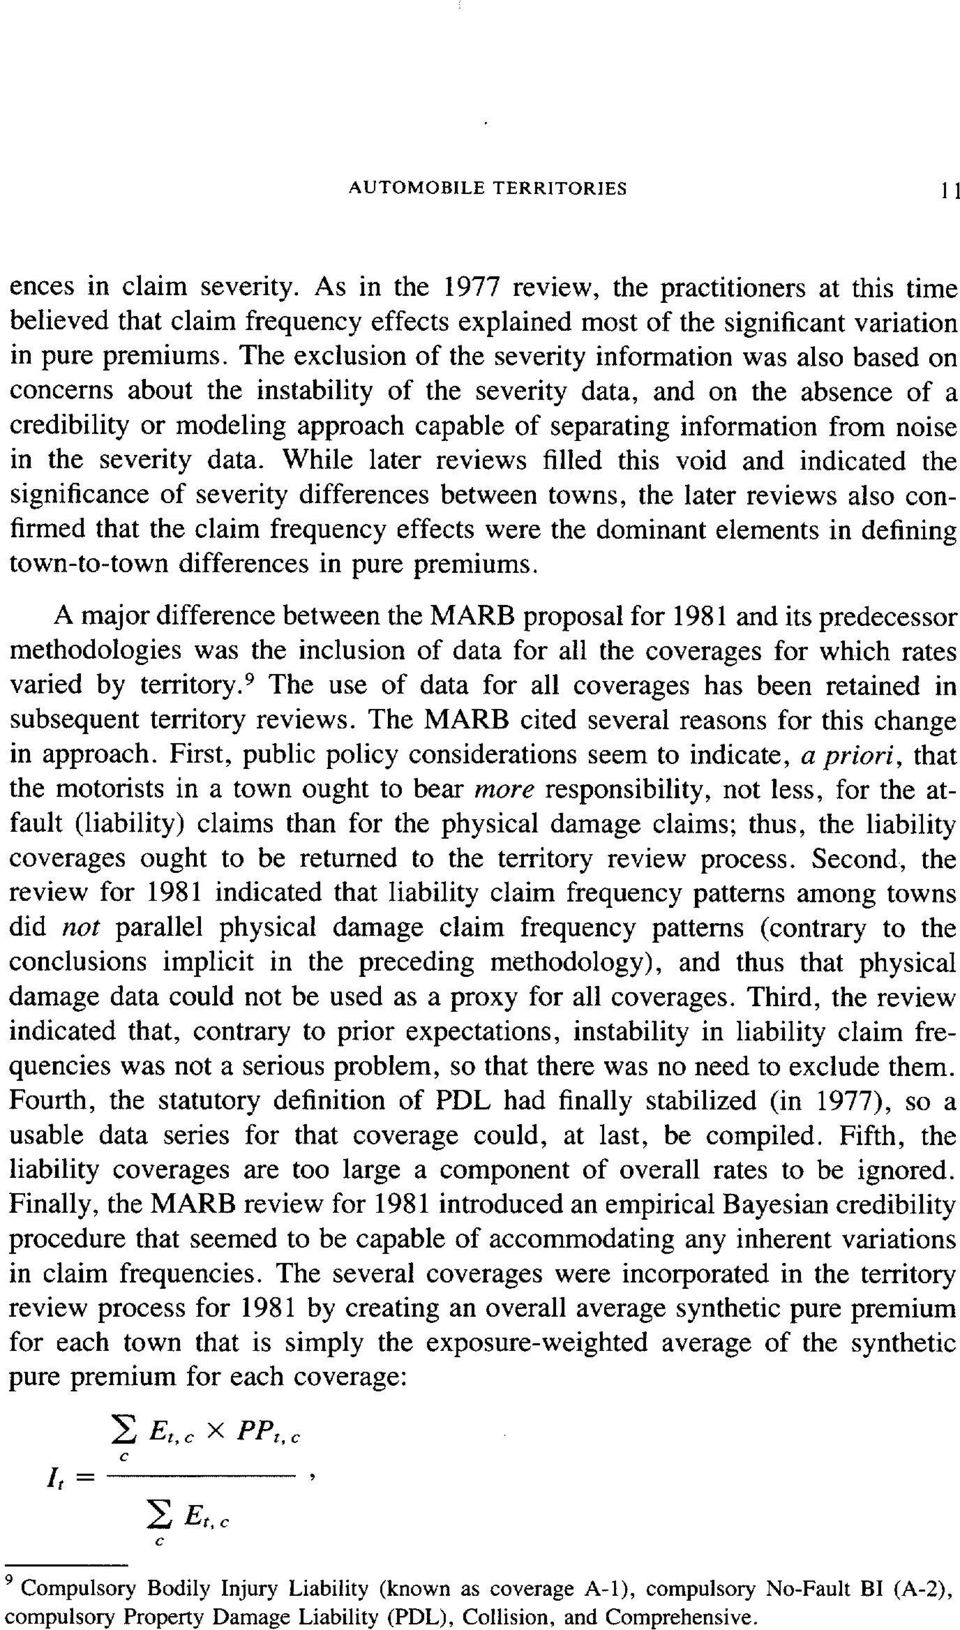 The exclusion of the severity information was also based on concerns about the instability of the severity data, and on the absence of a credibility or modeling approach capable of separating